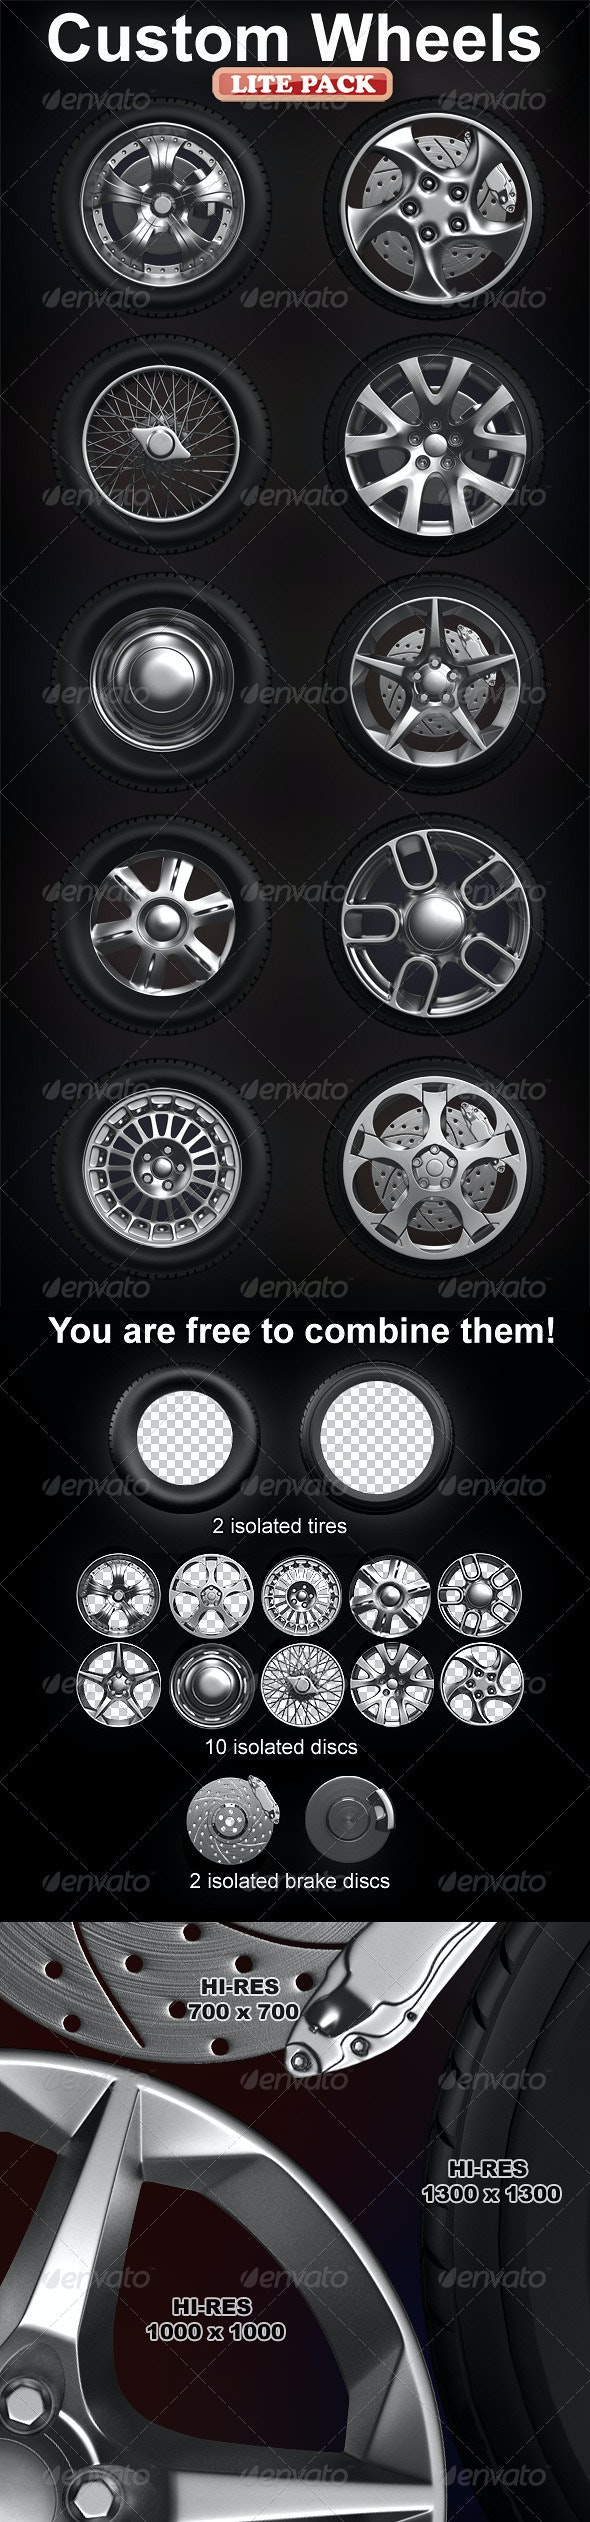 Isolated custom wheels pack (2 tires, 10 discs) - Objects 3D Renders